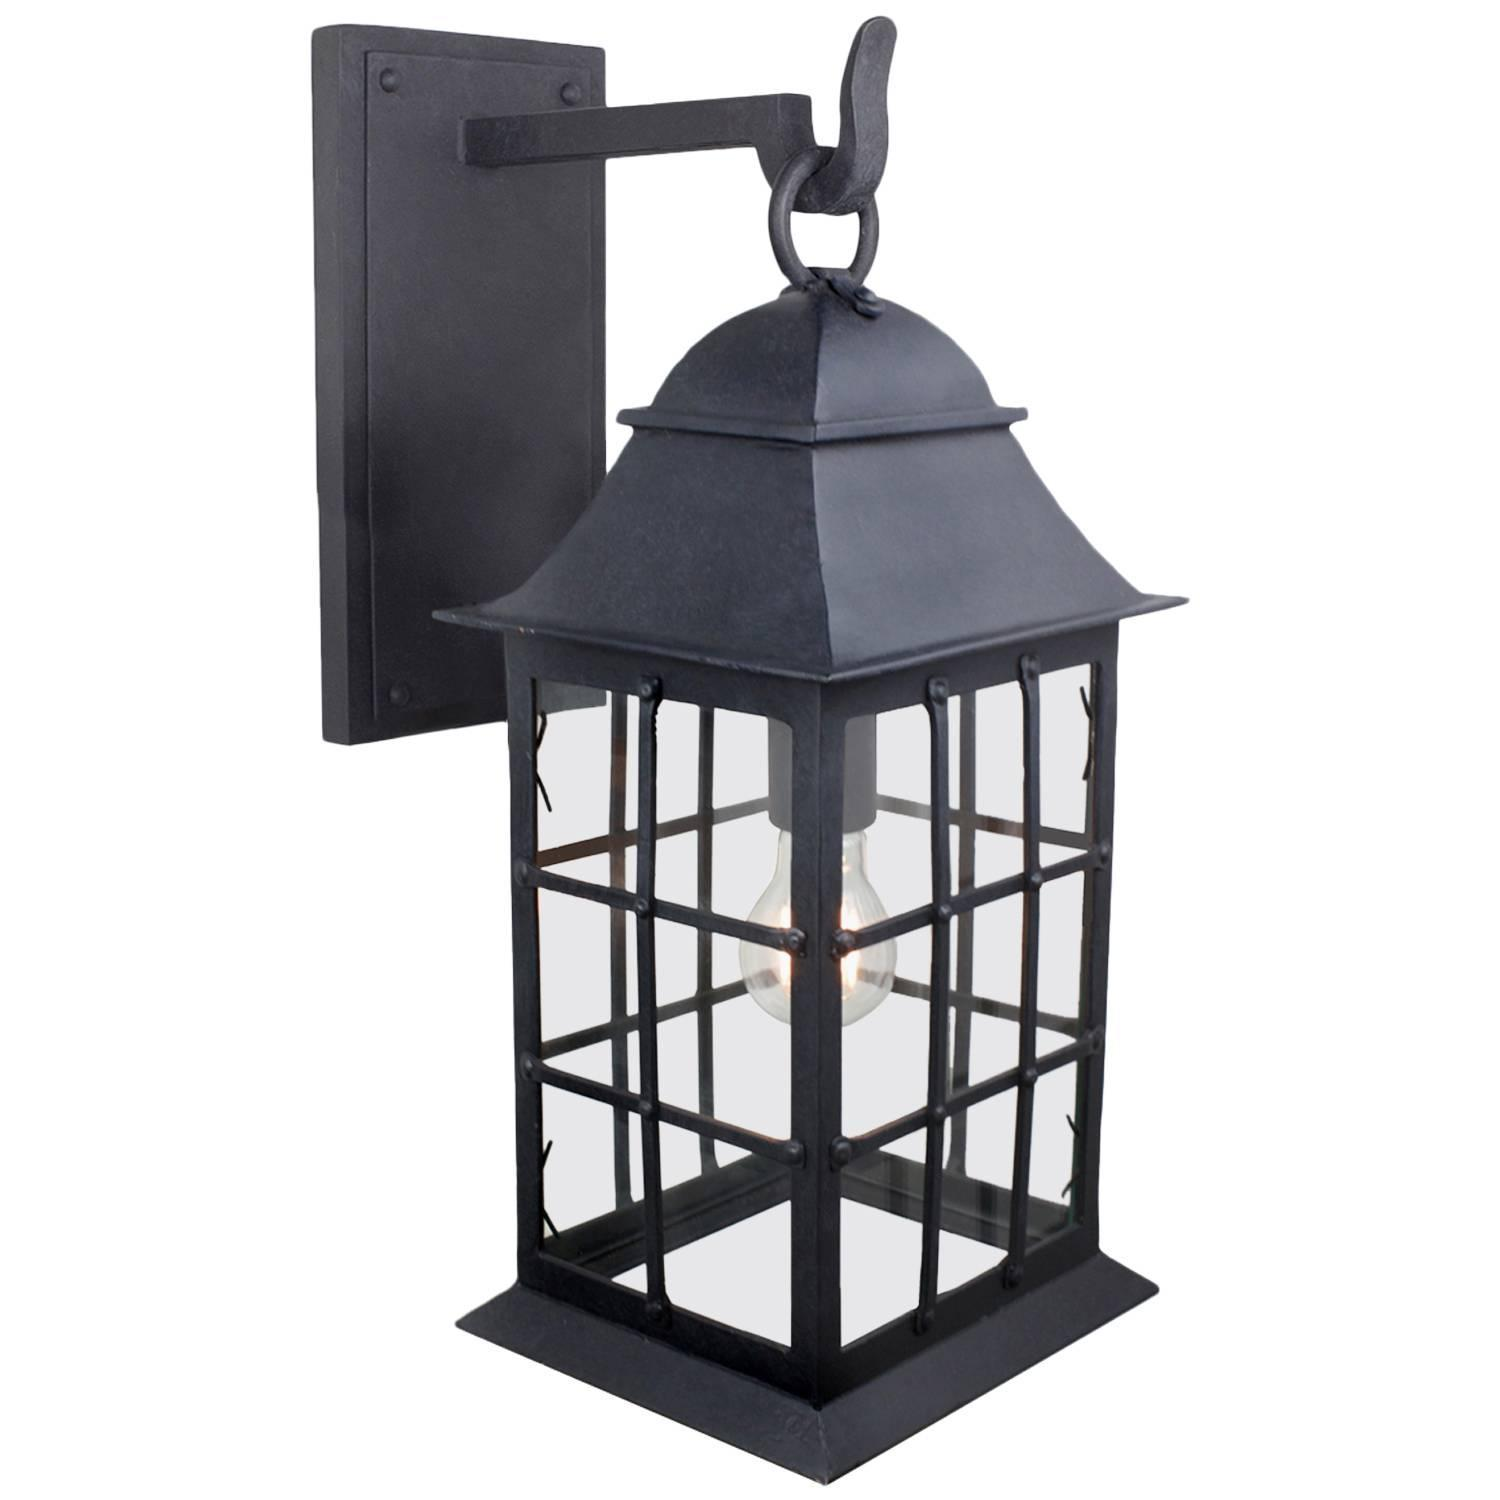 Exterior Wrought Iron Wall Lantern With Nautical Inspirations By Britt Jewett For Sale At 1stdibs